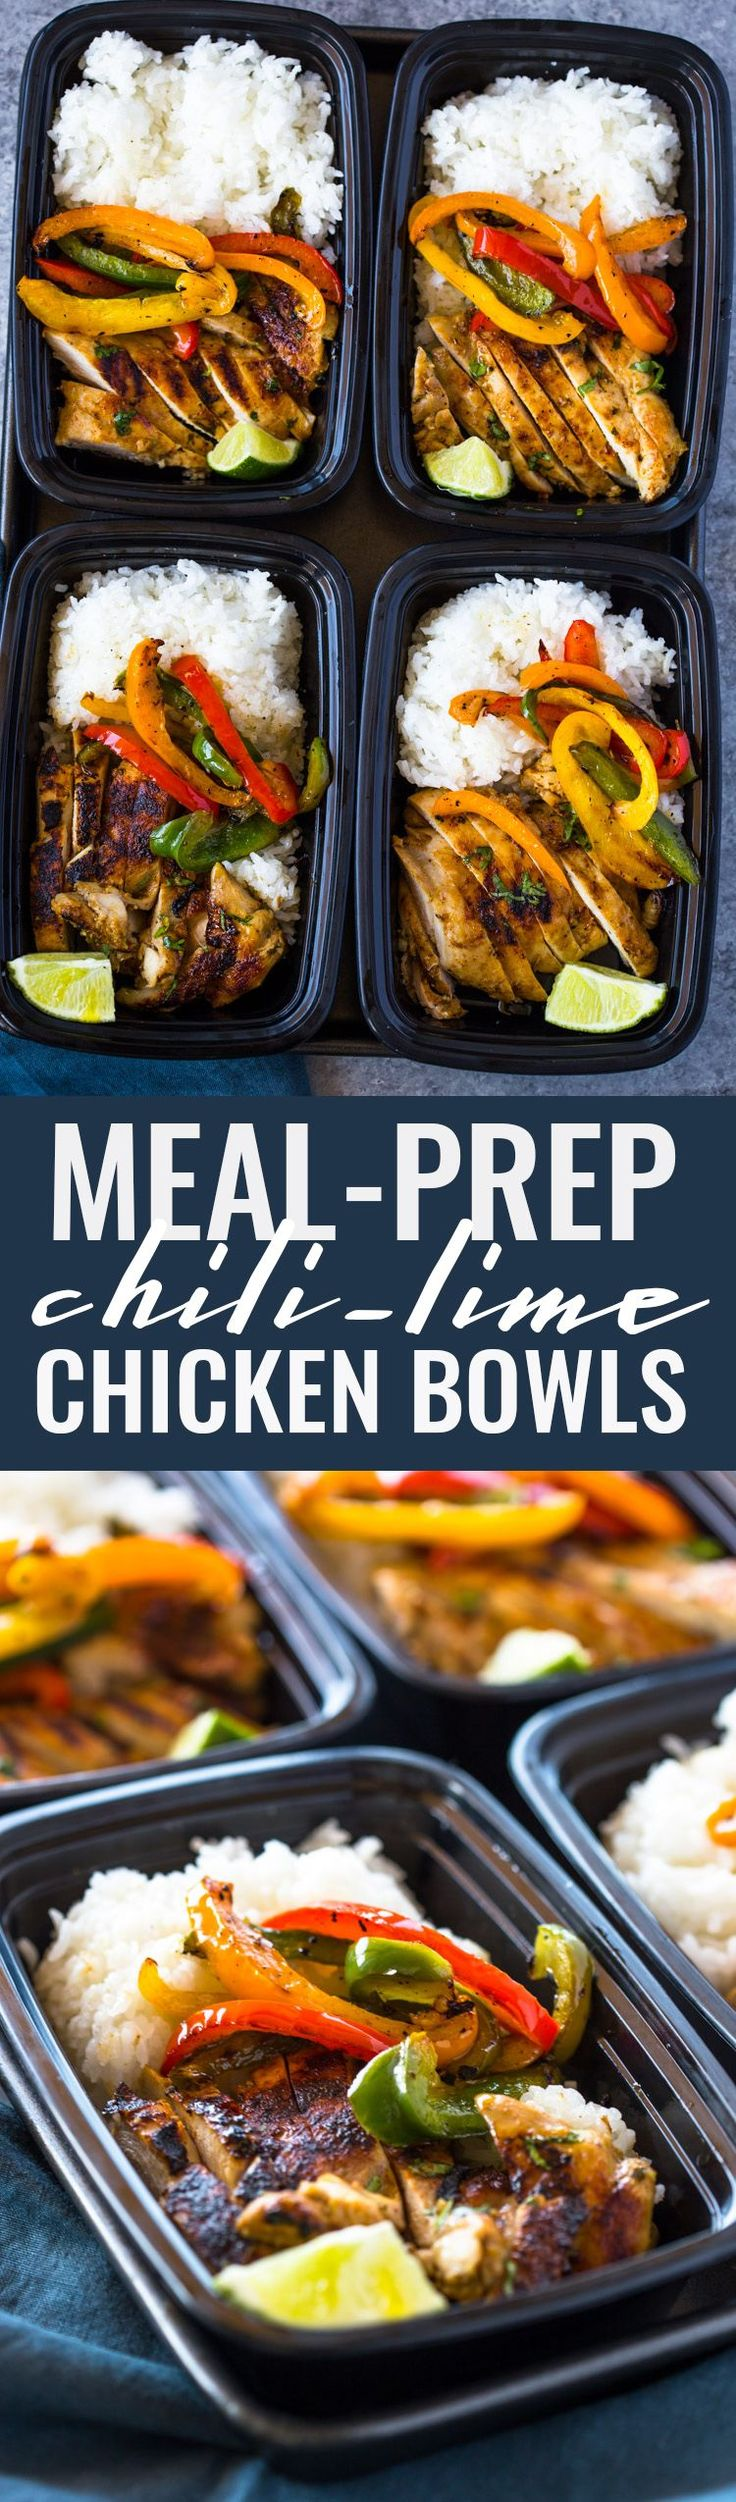 Chili Lime Chicken and Rice Meal Prep Bowls | Gimme Delicious